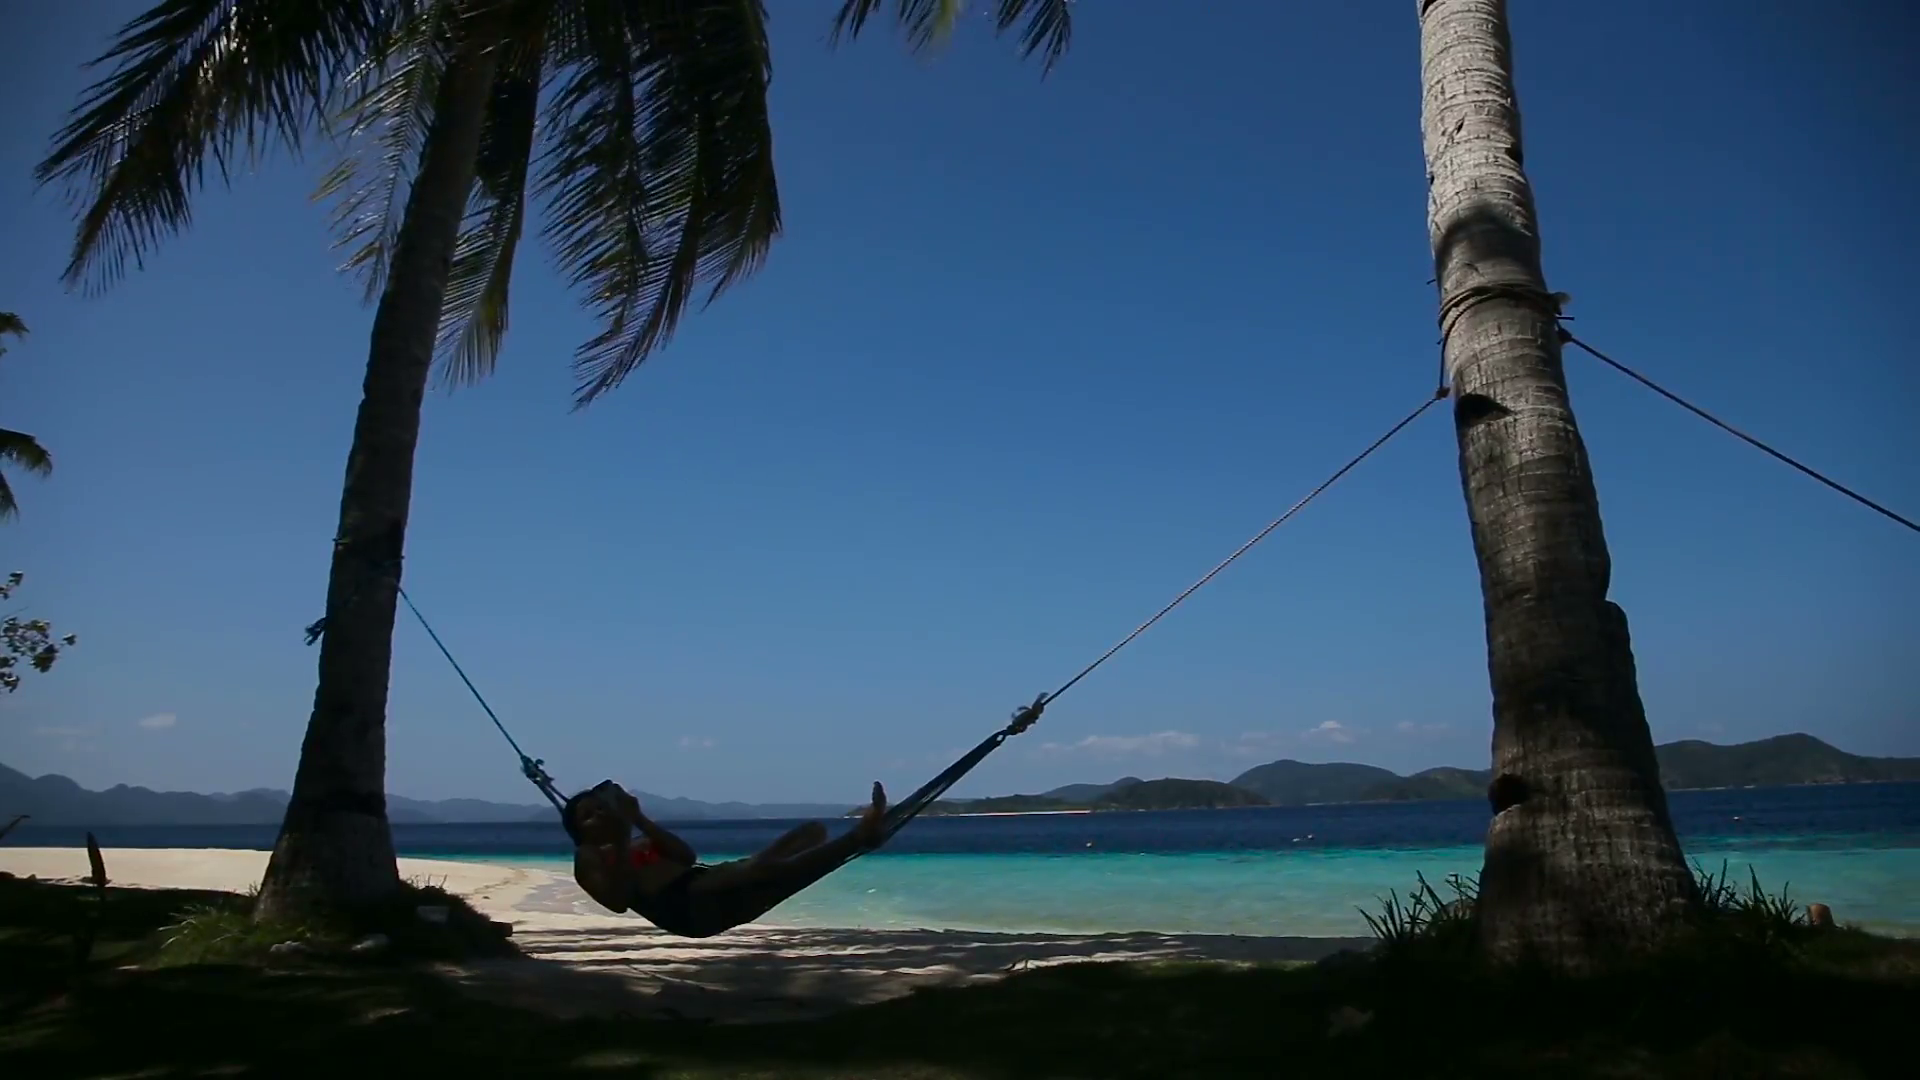 silhouette-of-man-in-hammock-on-the-beachidyllic-beach-with-coconut-trees-and-hammocktravel-concept_eimbsrb9g__F0000.png